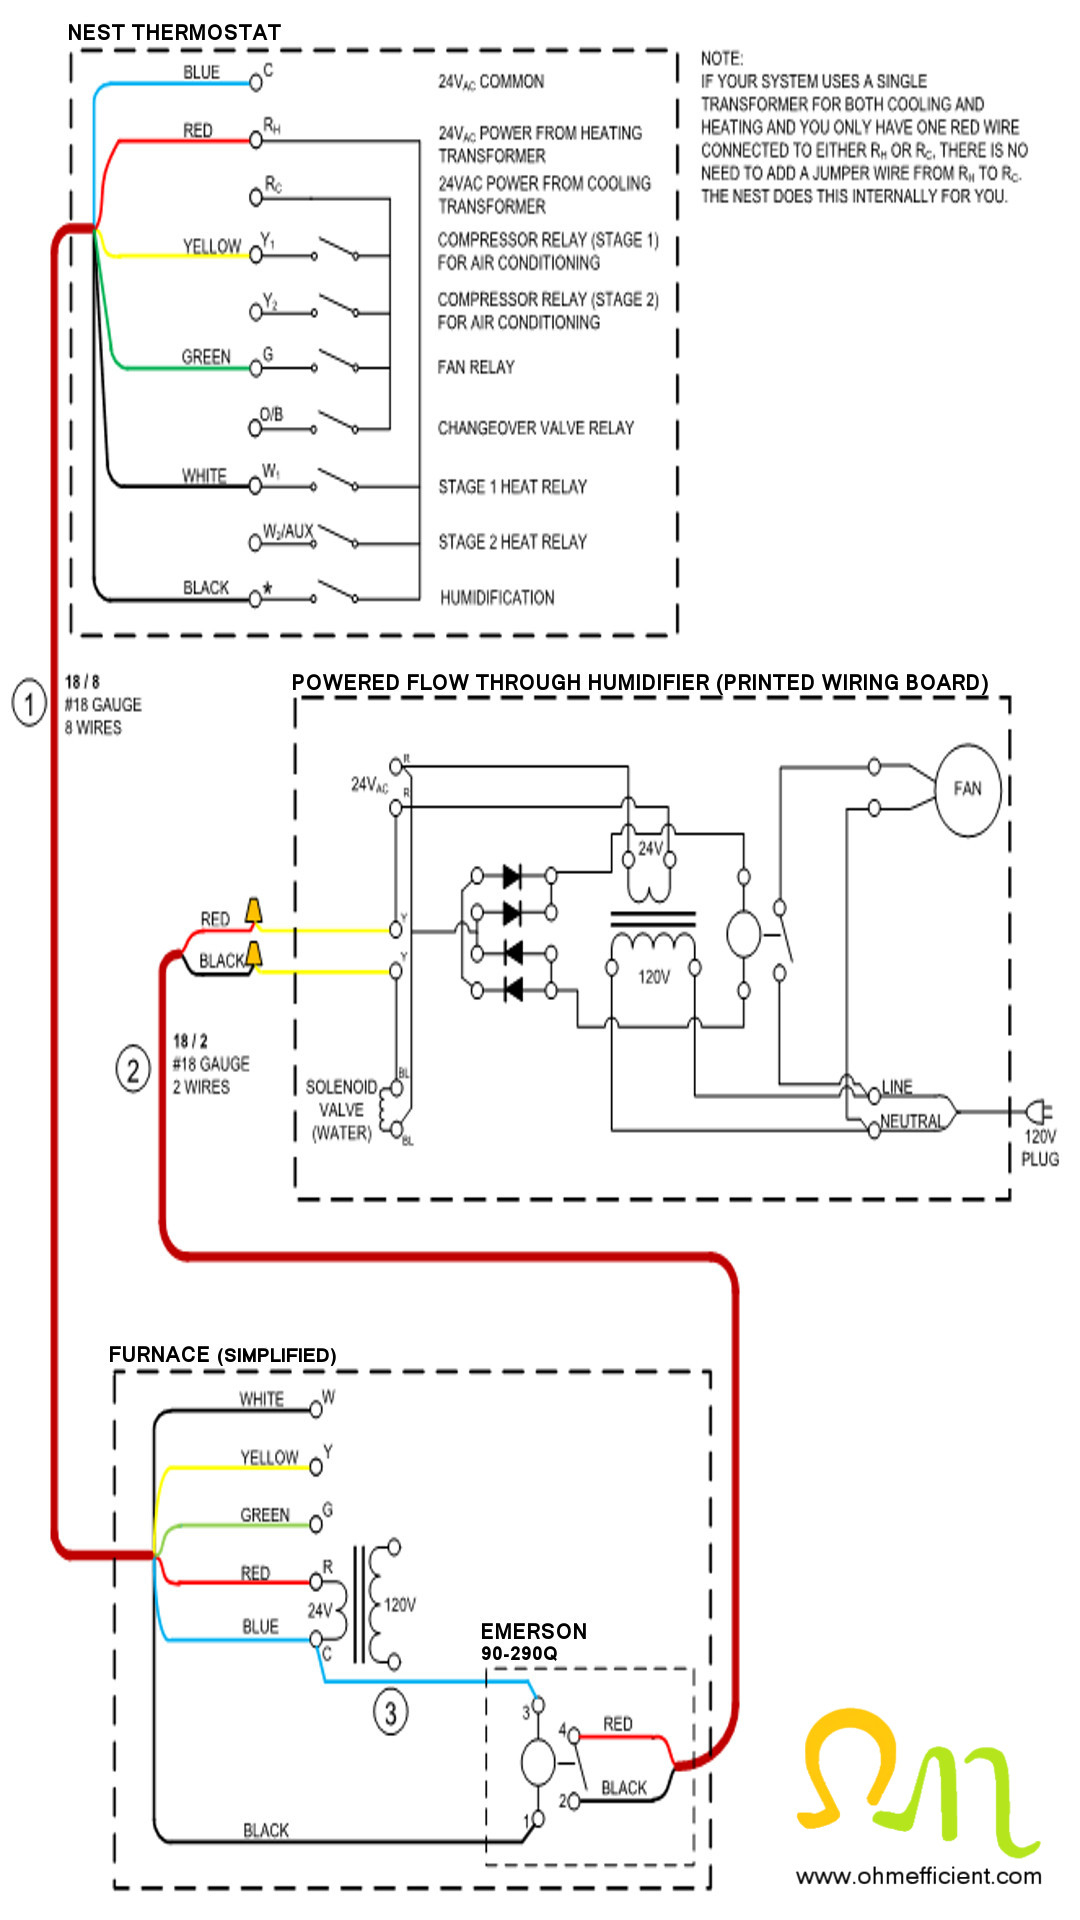 How To Connect & Setup A Nest Thermostat To Function As A Humidistat - Nest Humidifier Solenoid Wiring Diagram